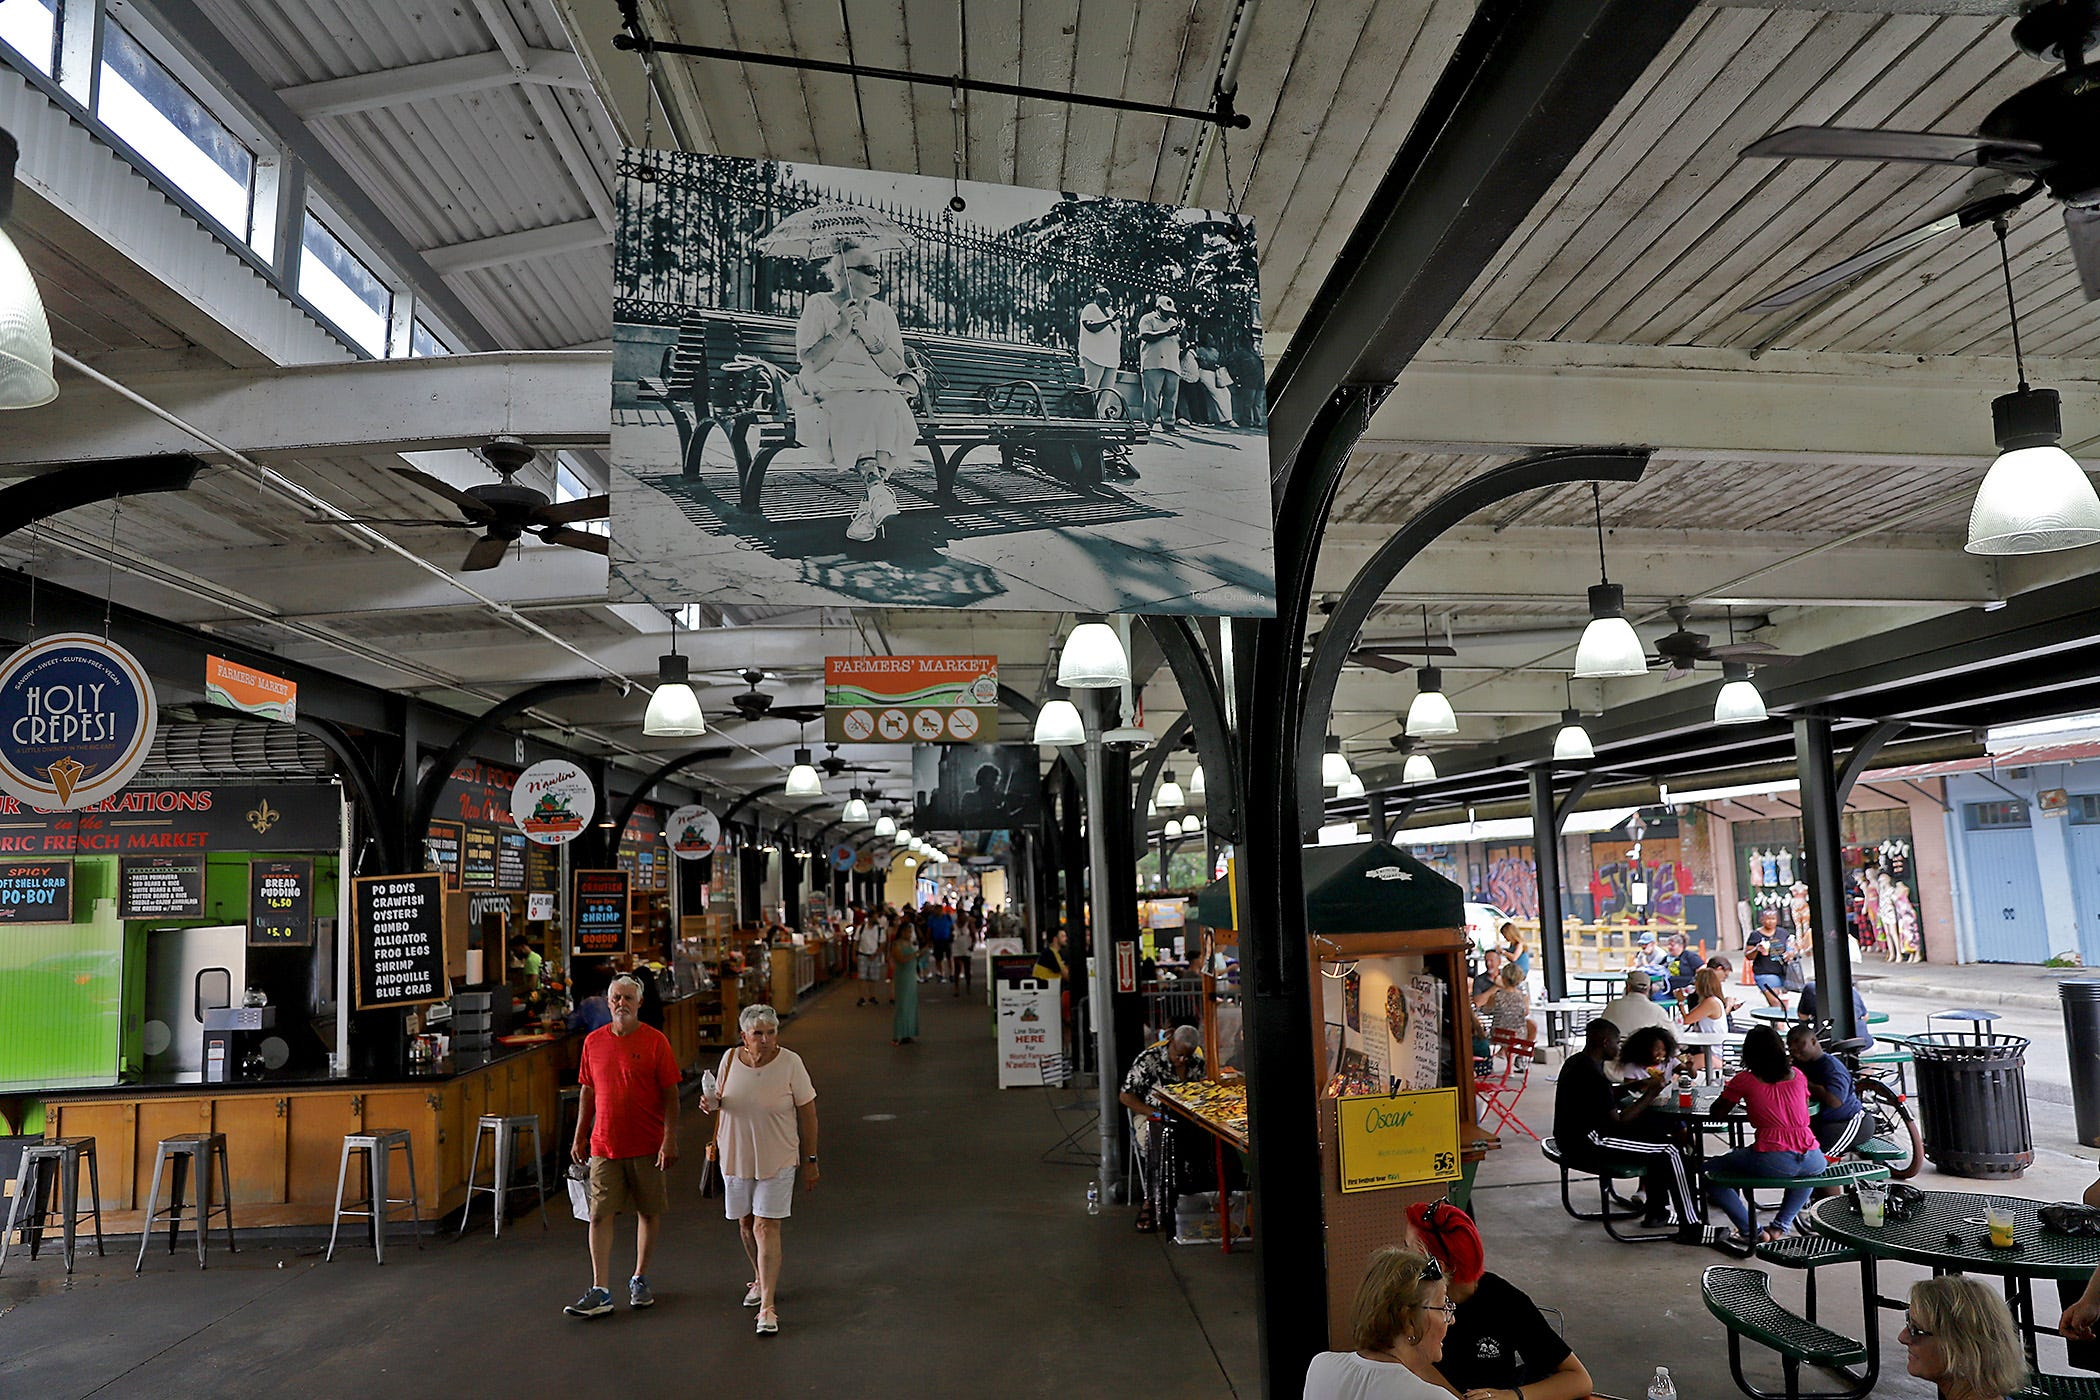 The French Market in New Orleans on Thursday, July 1, 2021.